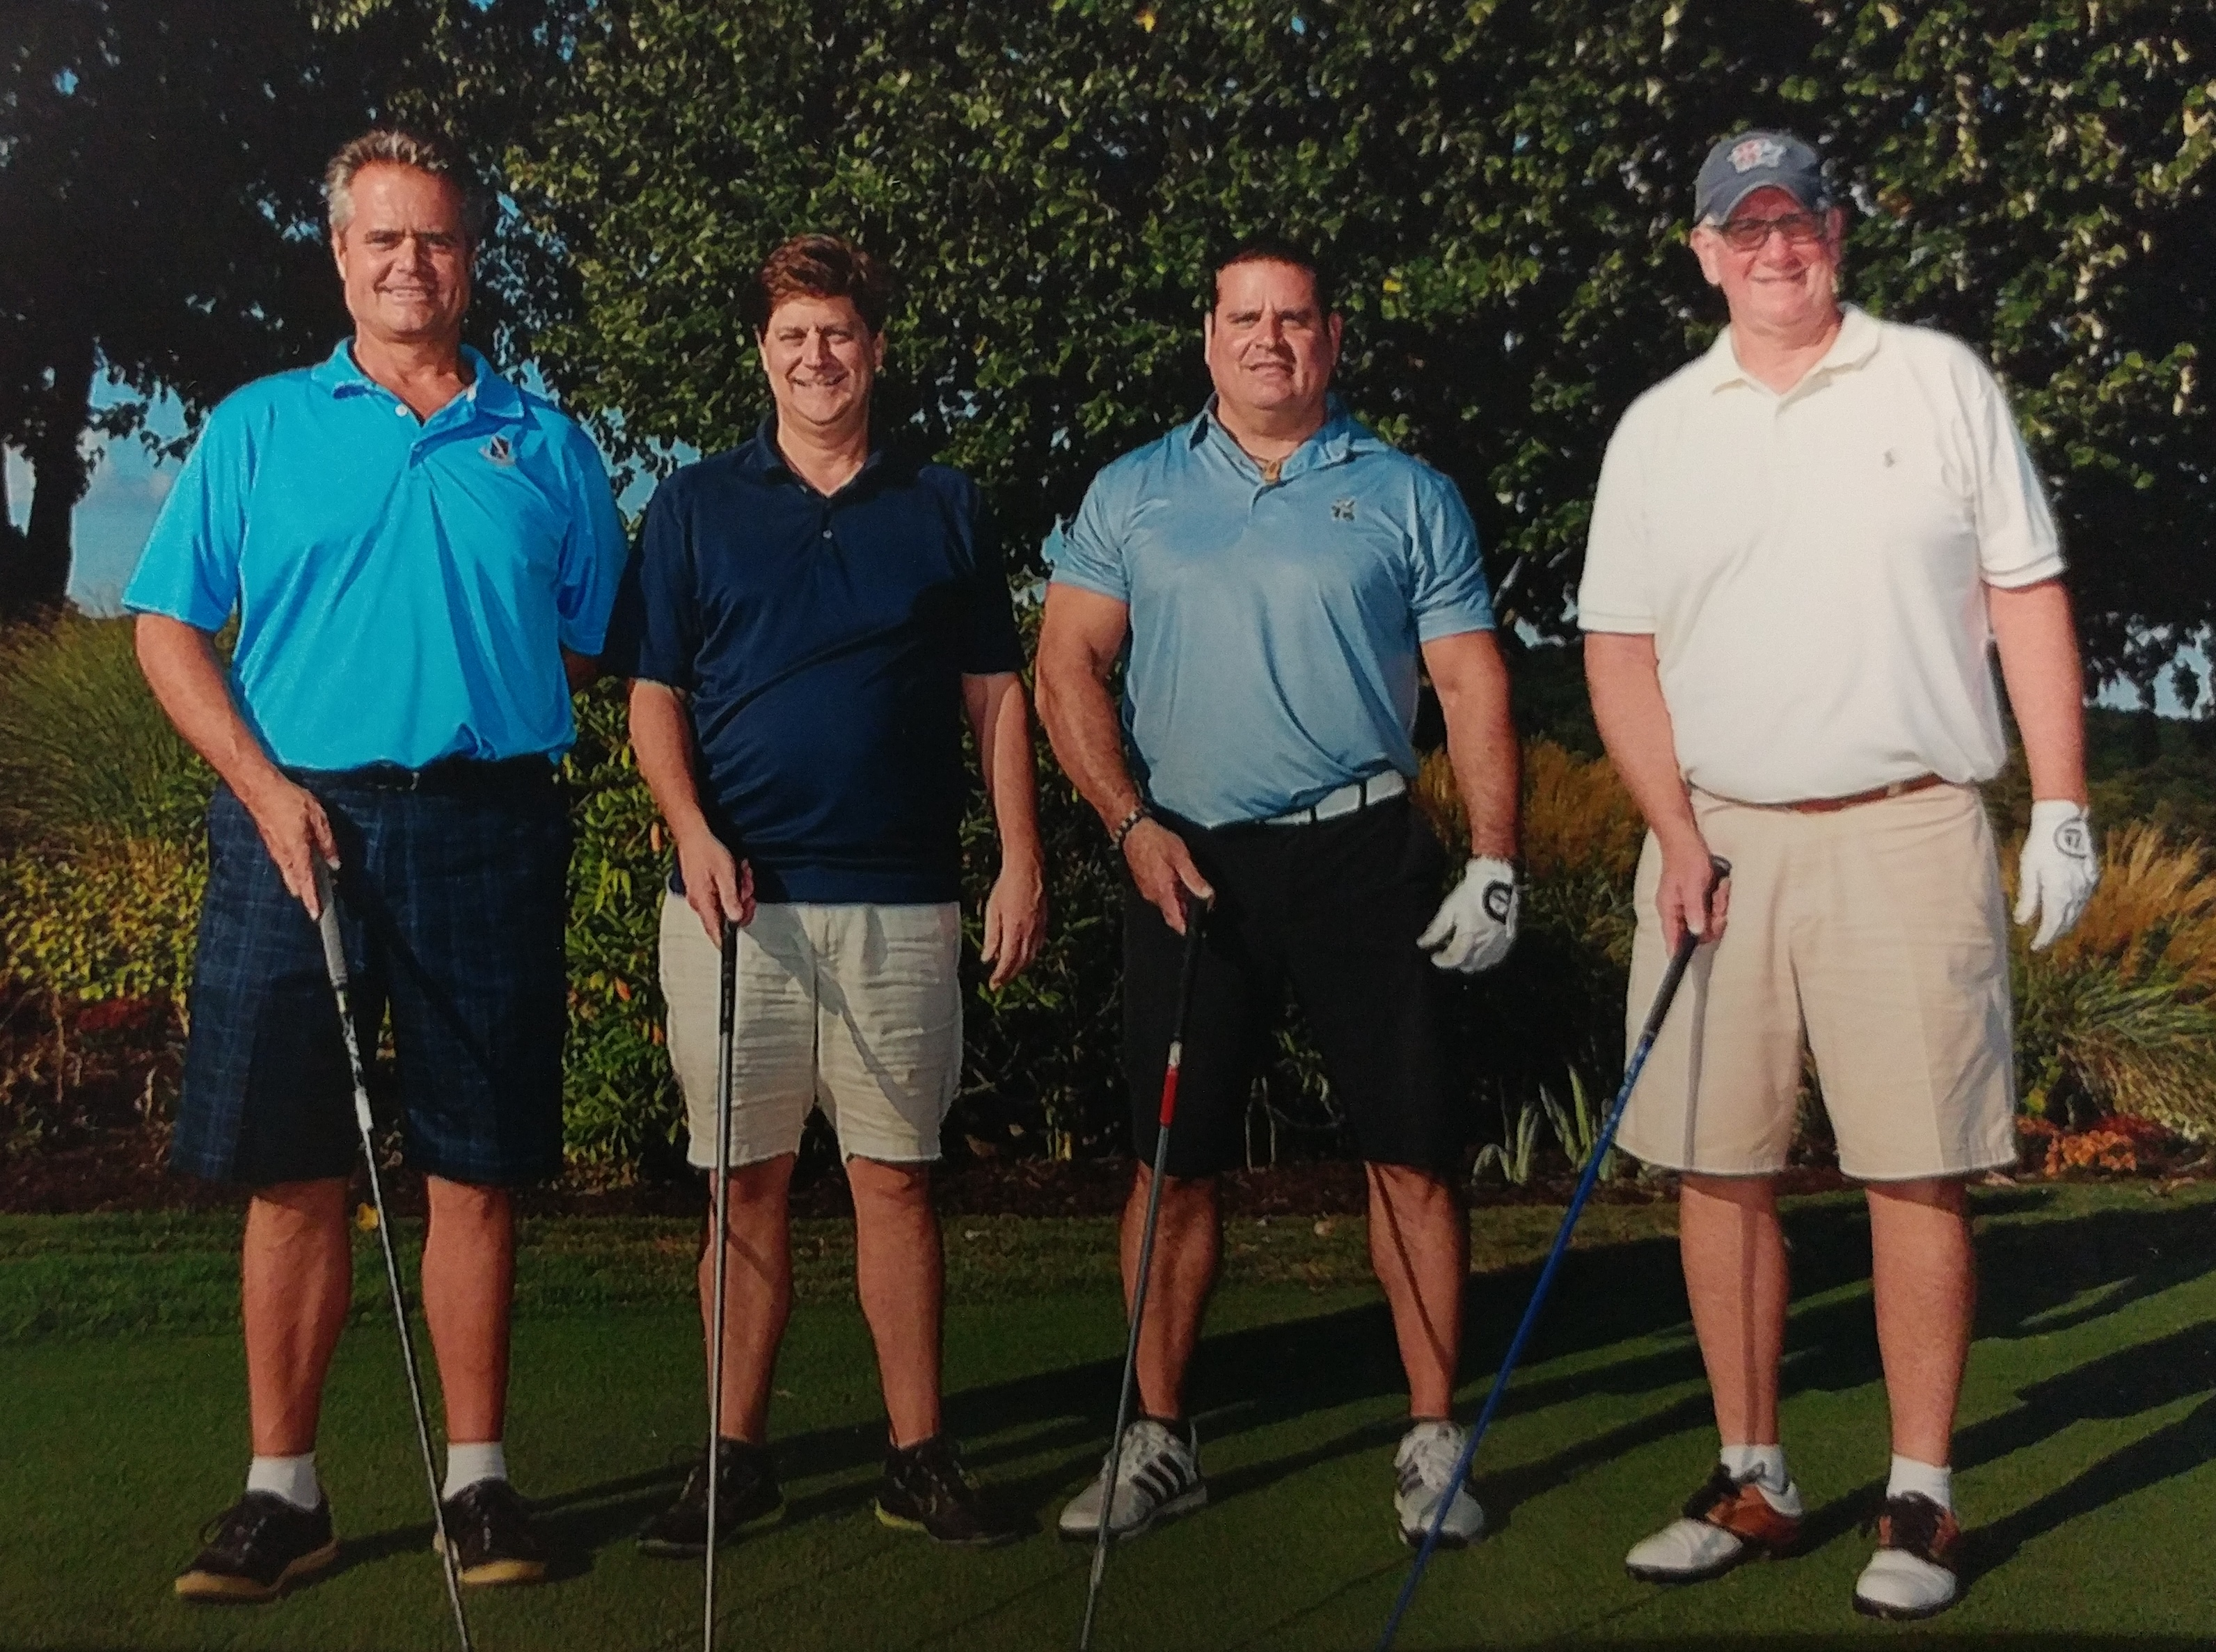 Image: 2016 LaRoche College Scott Lang Memorial Golf Classic